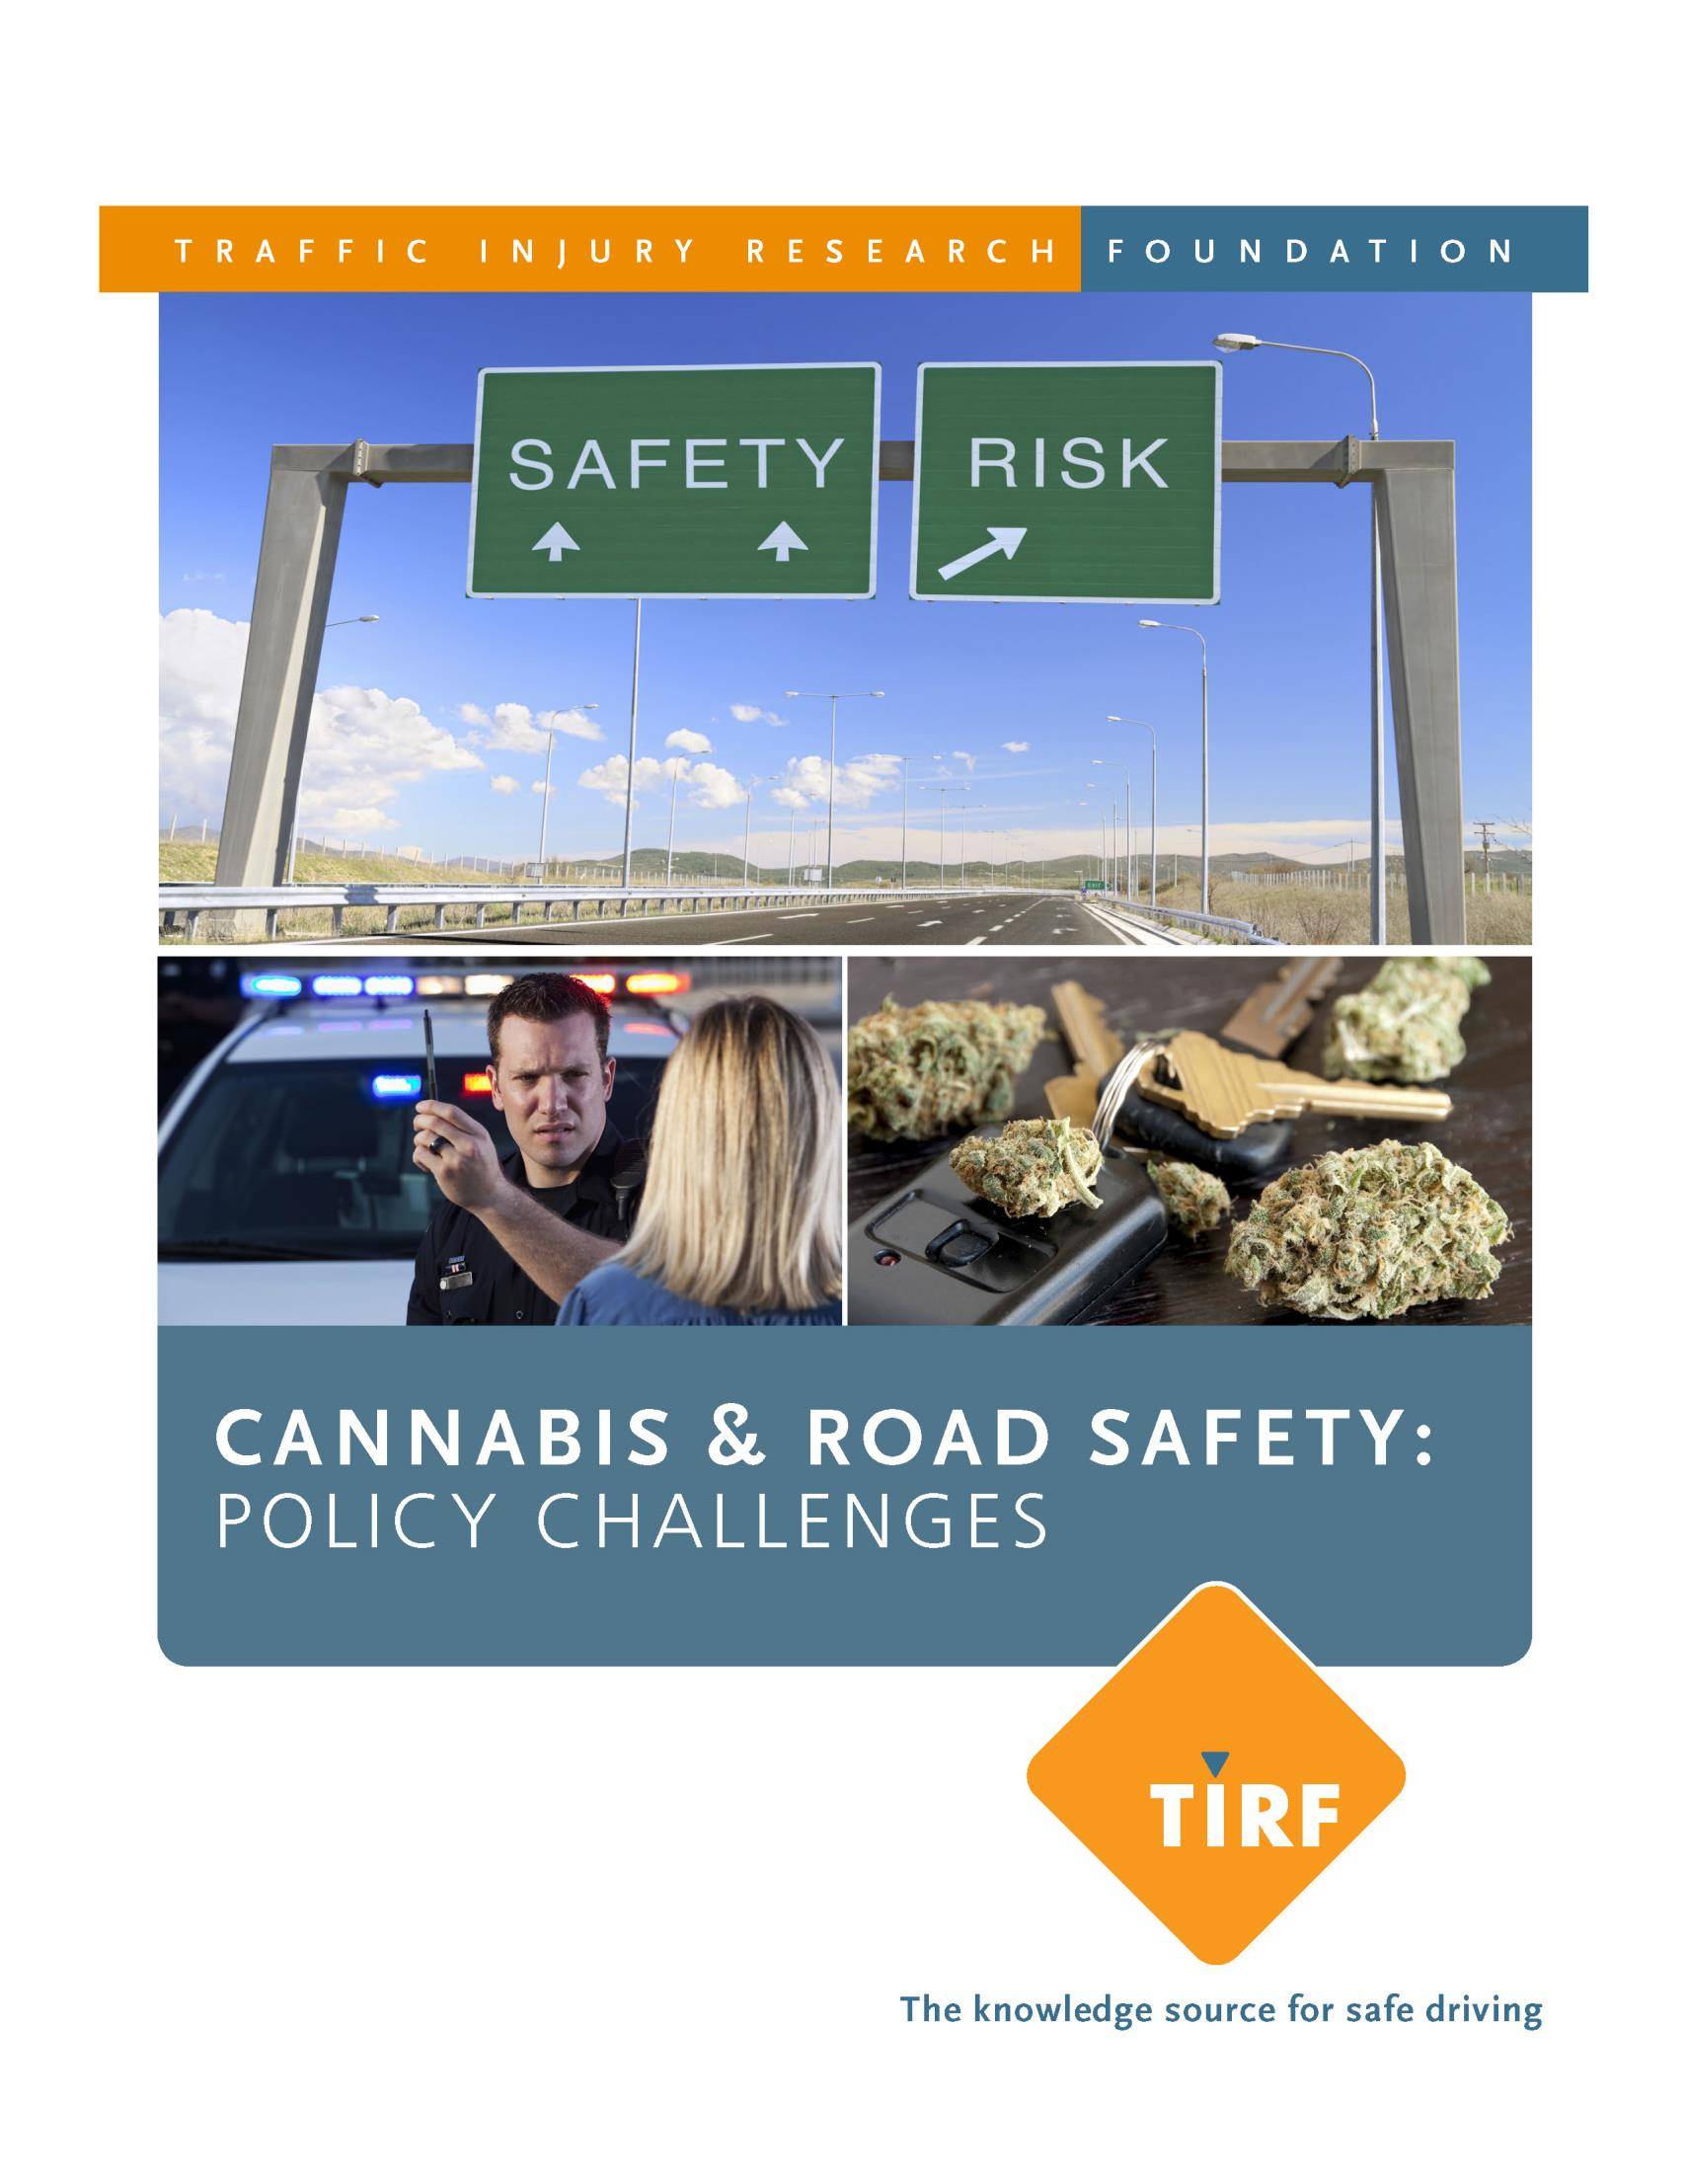 Cannabis & Road Safety: Policy Challenges